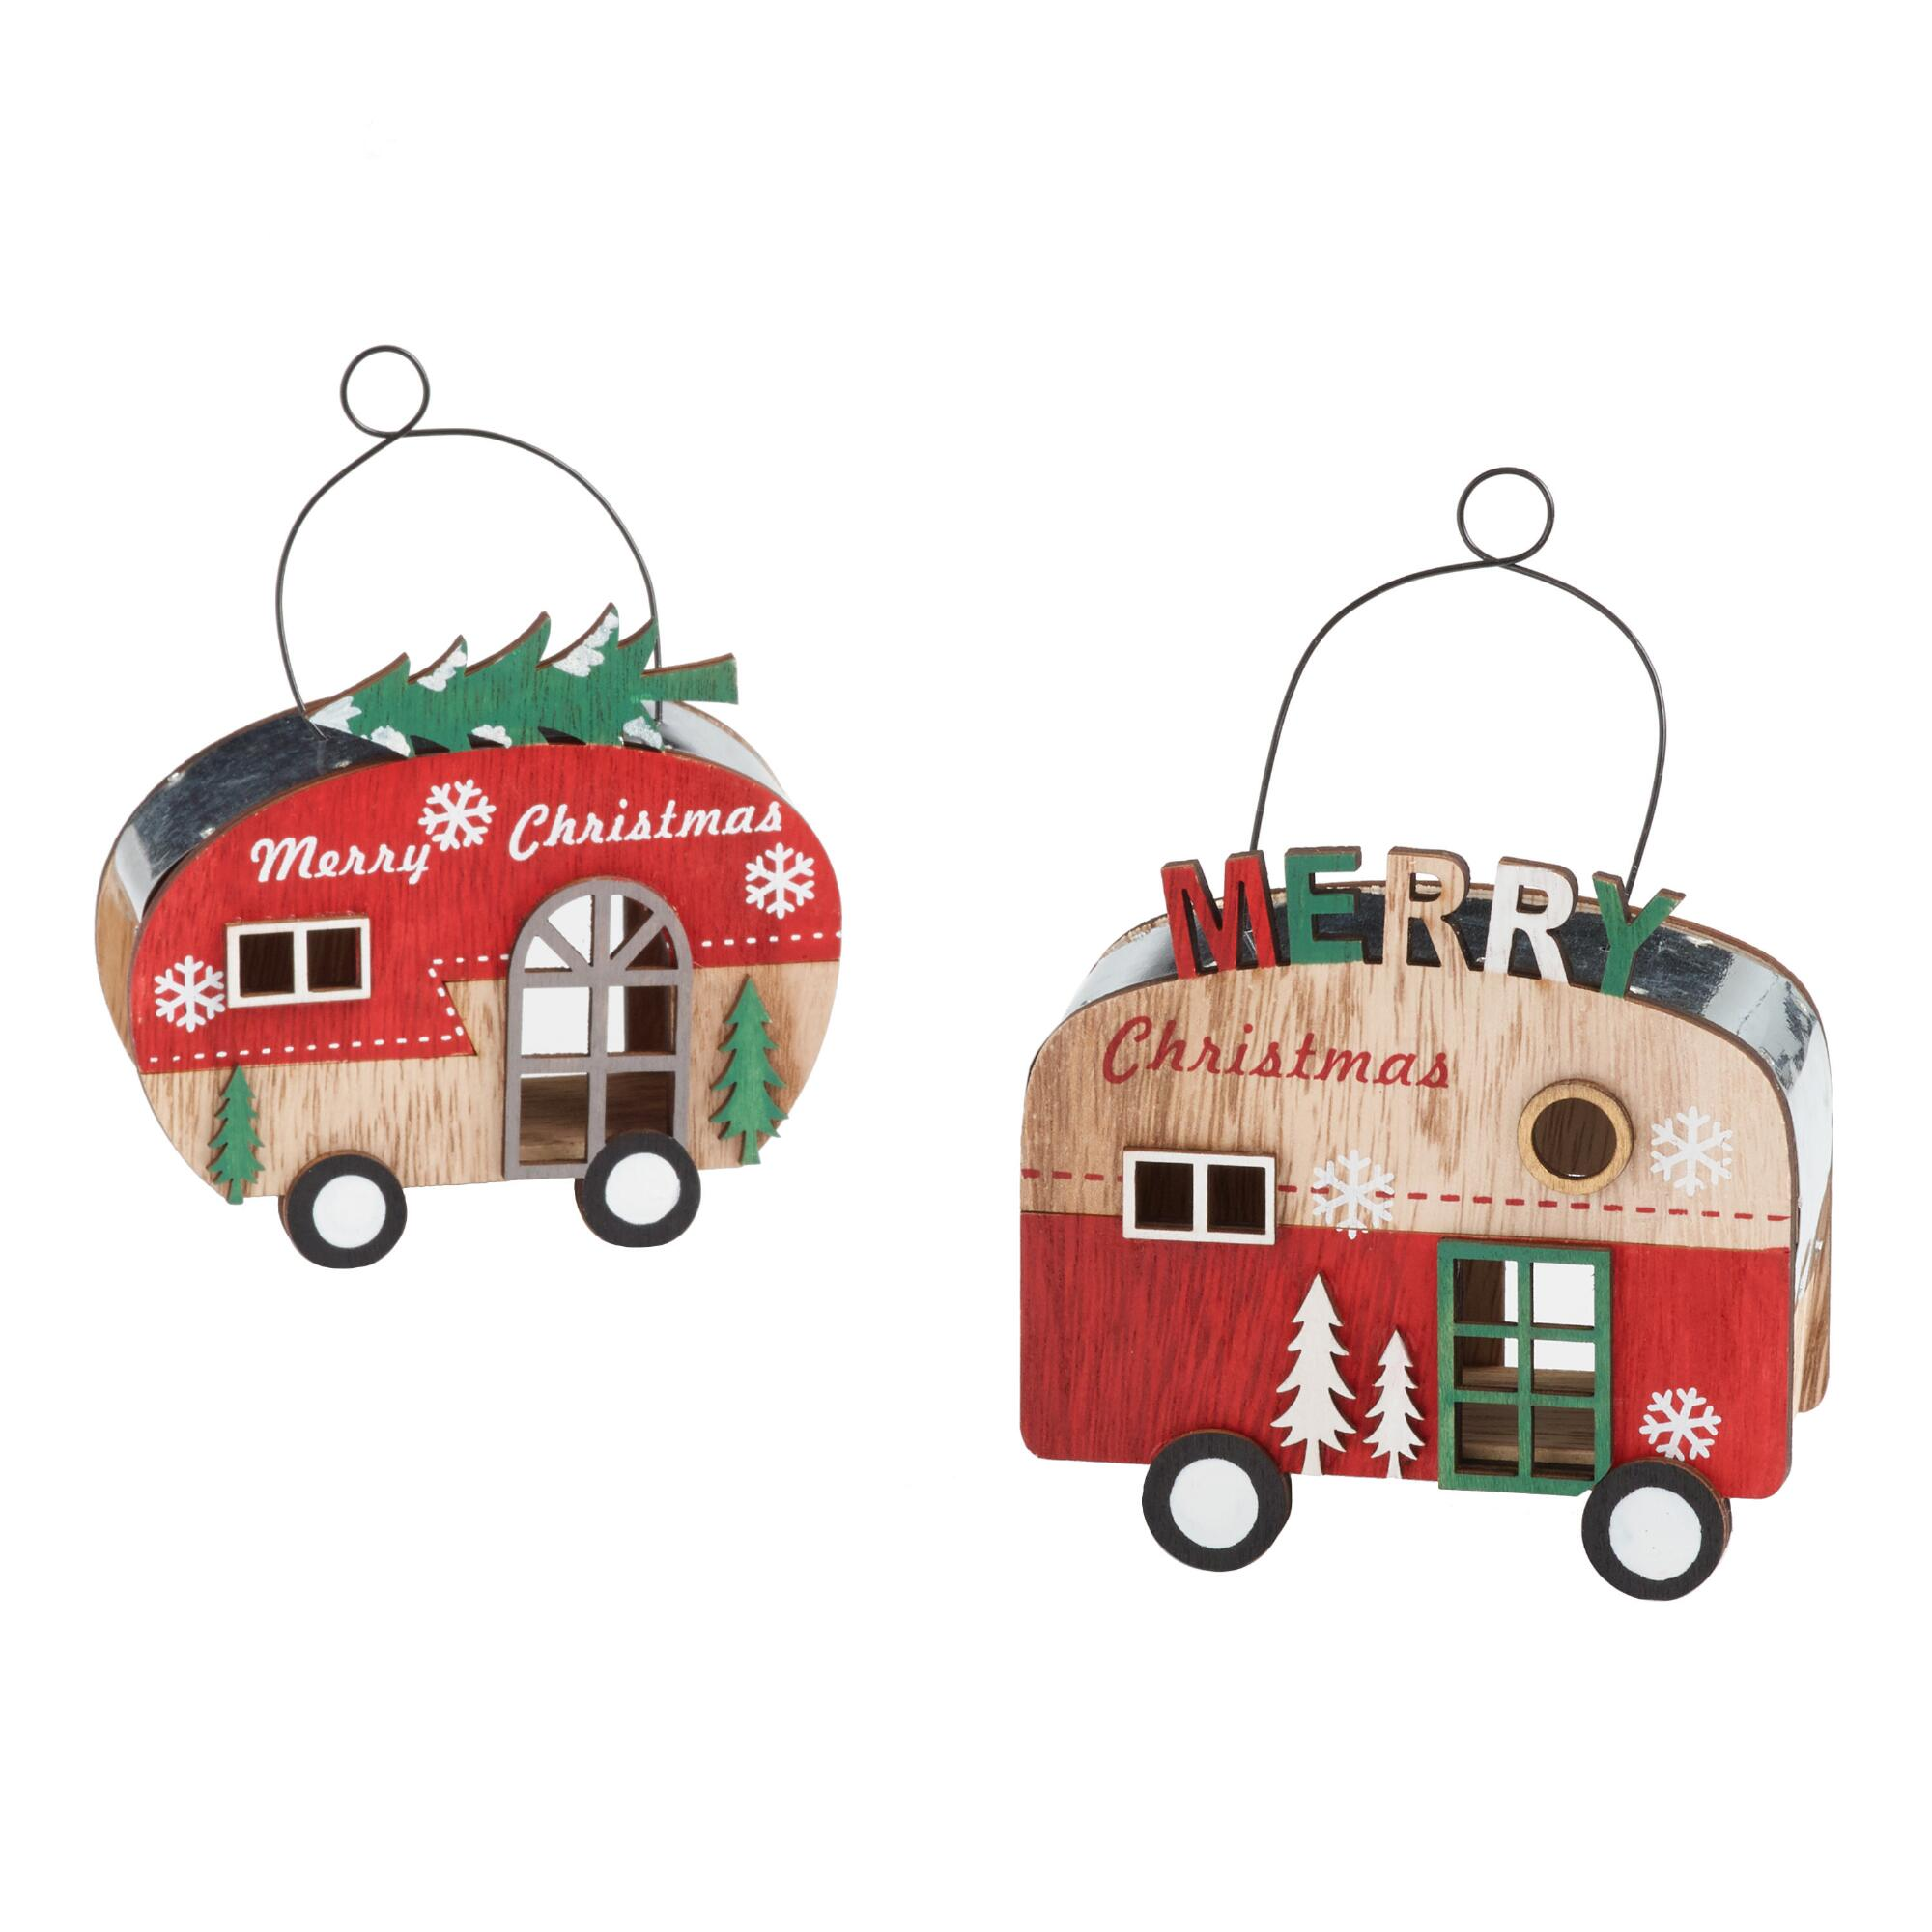 Wood and Metal Christmas Trailer Ornaments Set of 2 by World Market